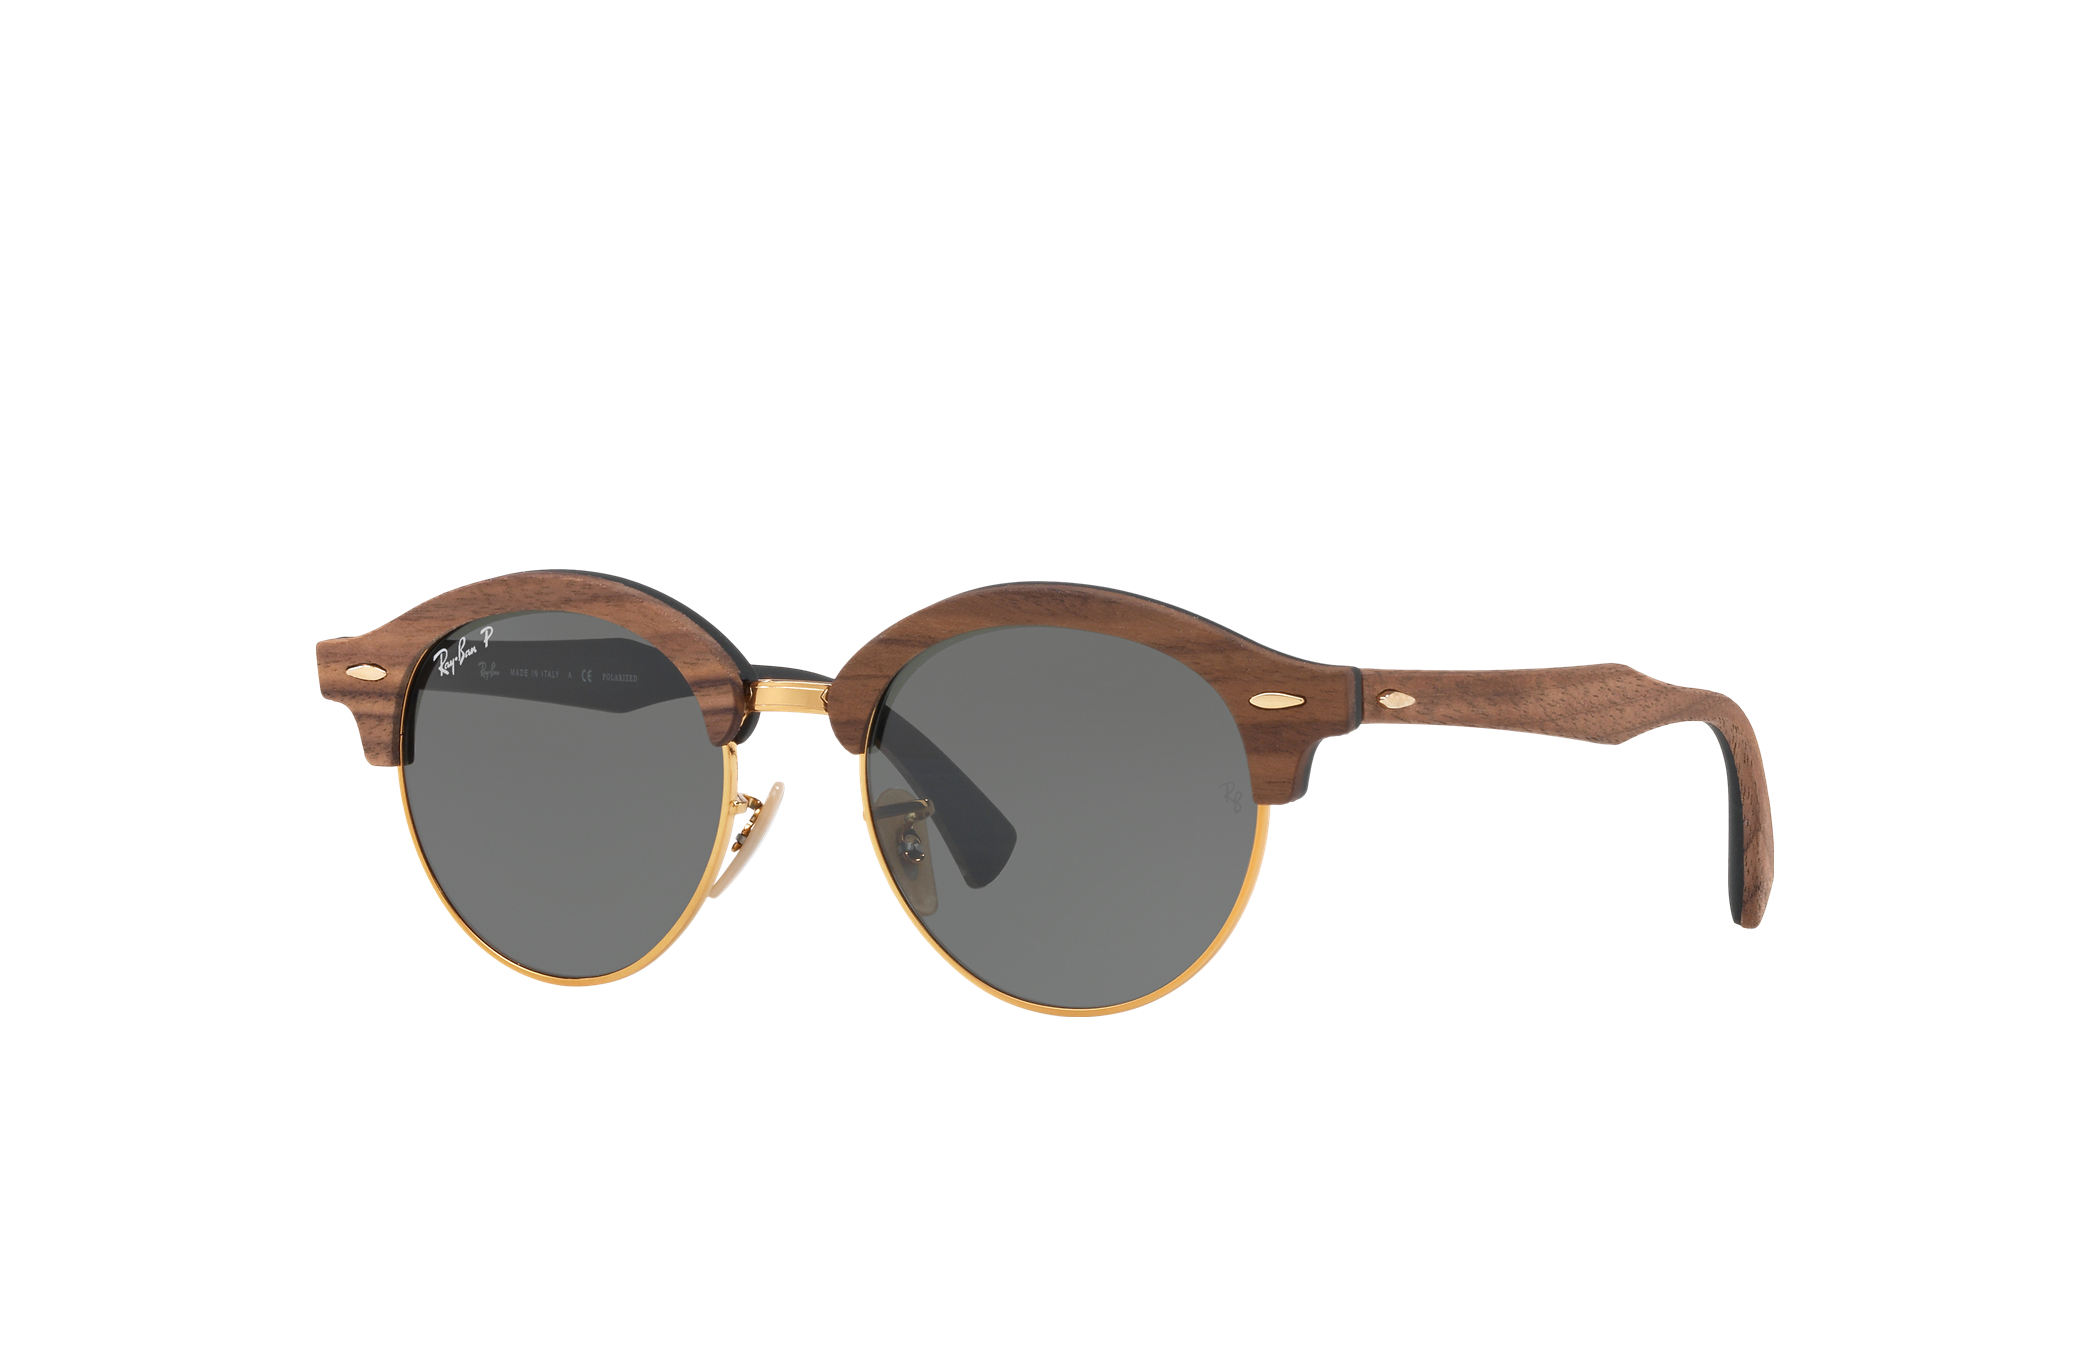 Ray-Ban Clubround Wood Brown, Polarized Green Lenses - RB4246M